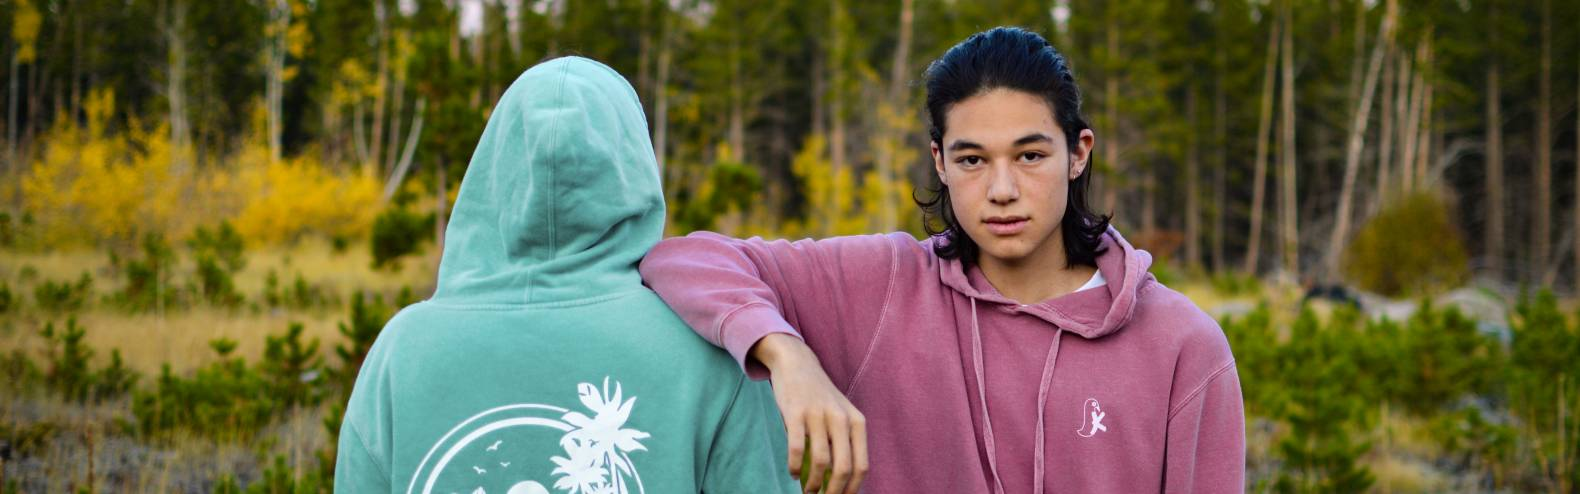 models in hoodies with fall aspens